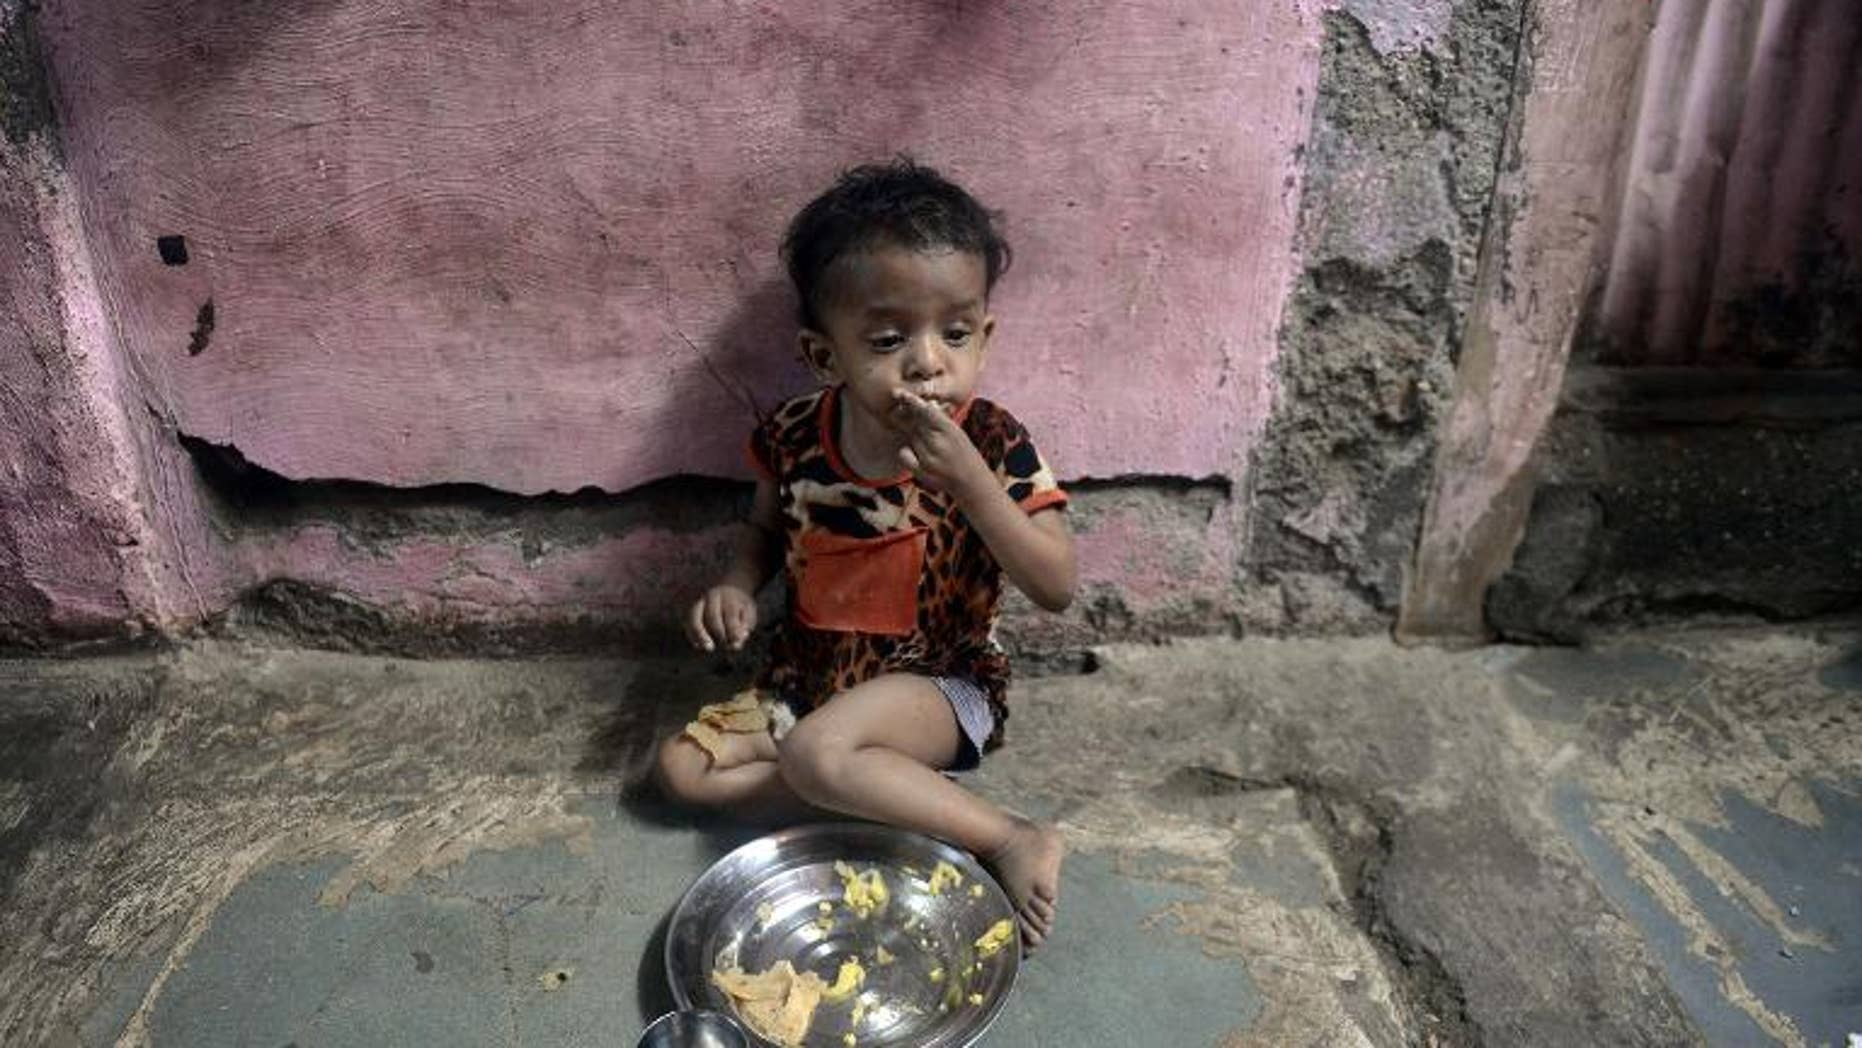 A malnourished Indian child finishes her lunch consisting of a special supplementary diet at the Nutrition Rehabilitation Centre (NRC) of Apnalaya, an Indian NGO providing nutritious free meals at Govandi on the outskirts of Mumbai, on April 18, 2013